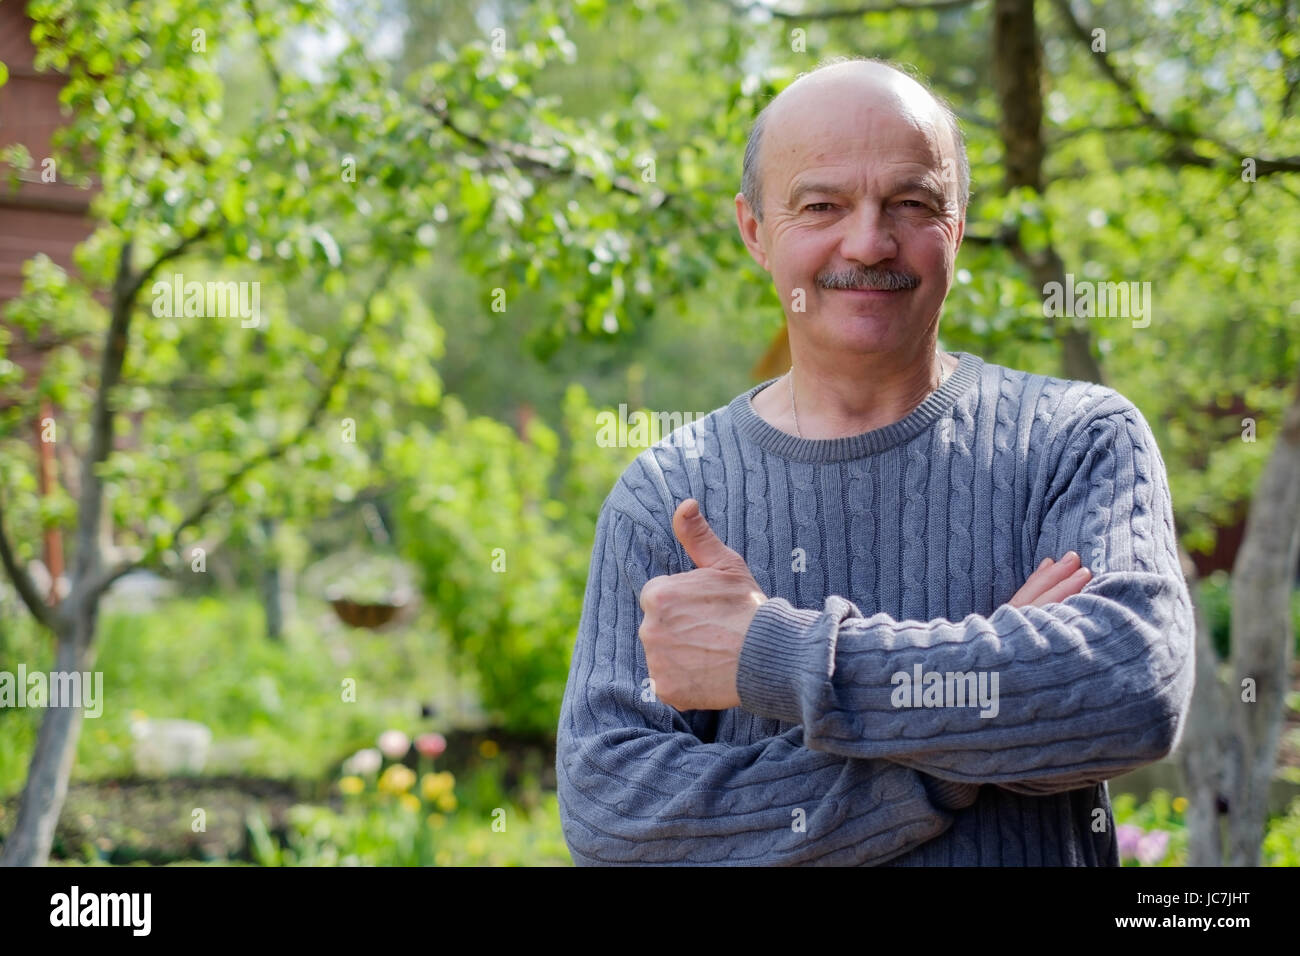 Mature man sitting in garden near apple tree in countryside. He shows thump up. - Stock Image